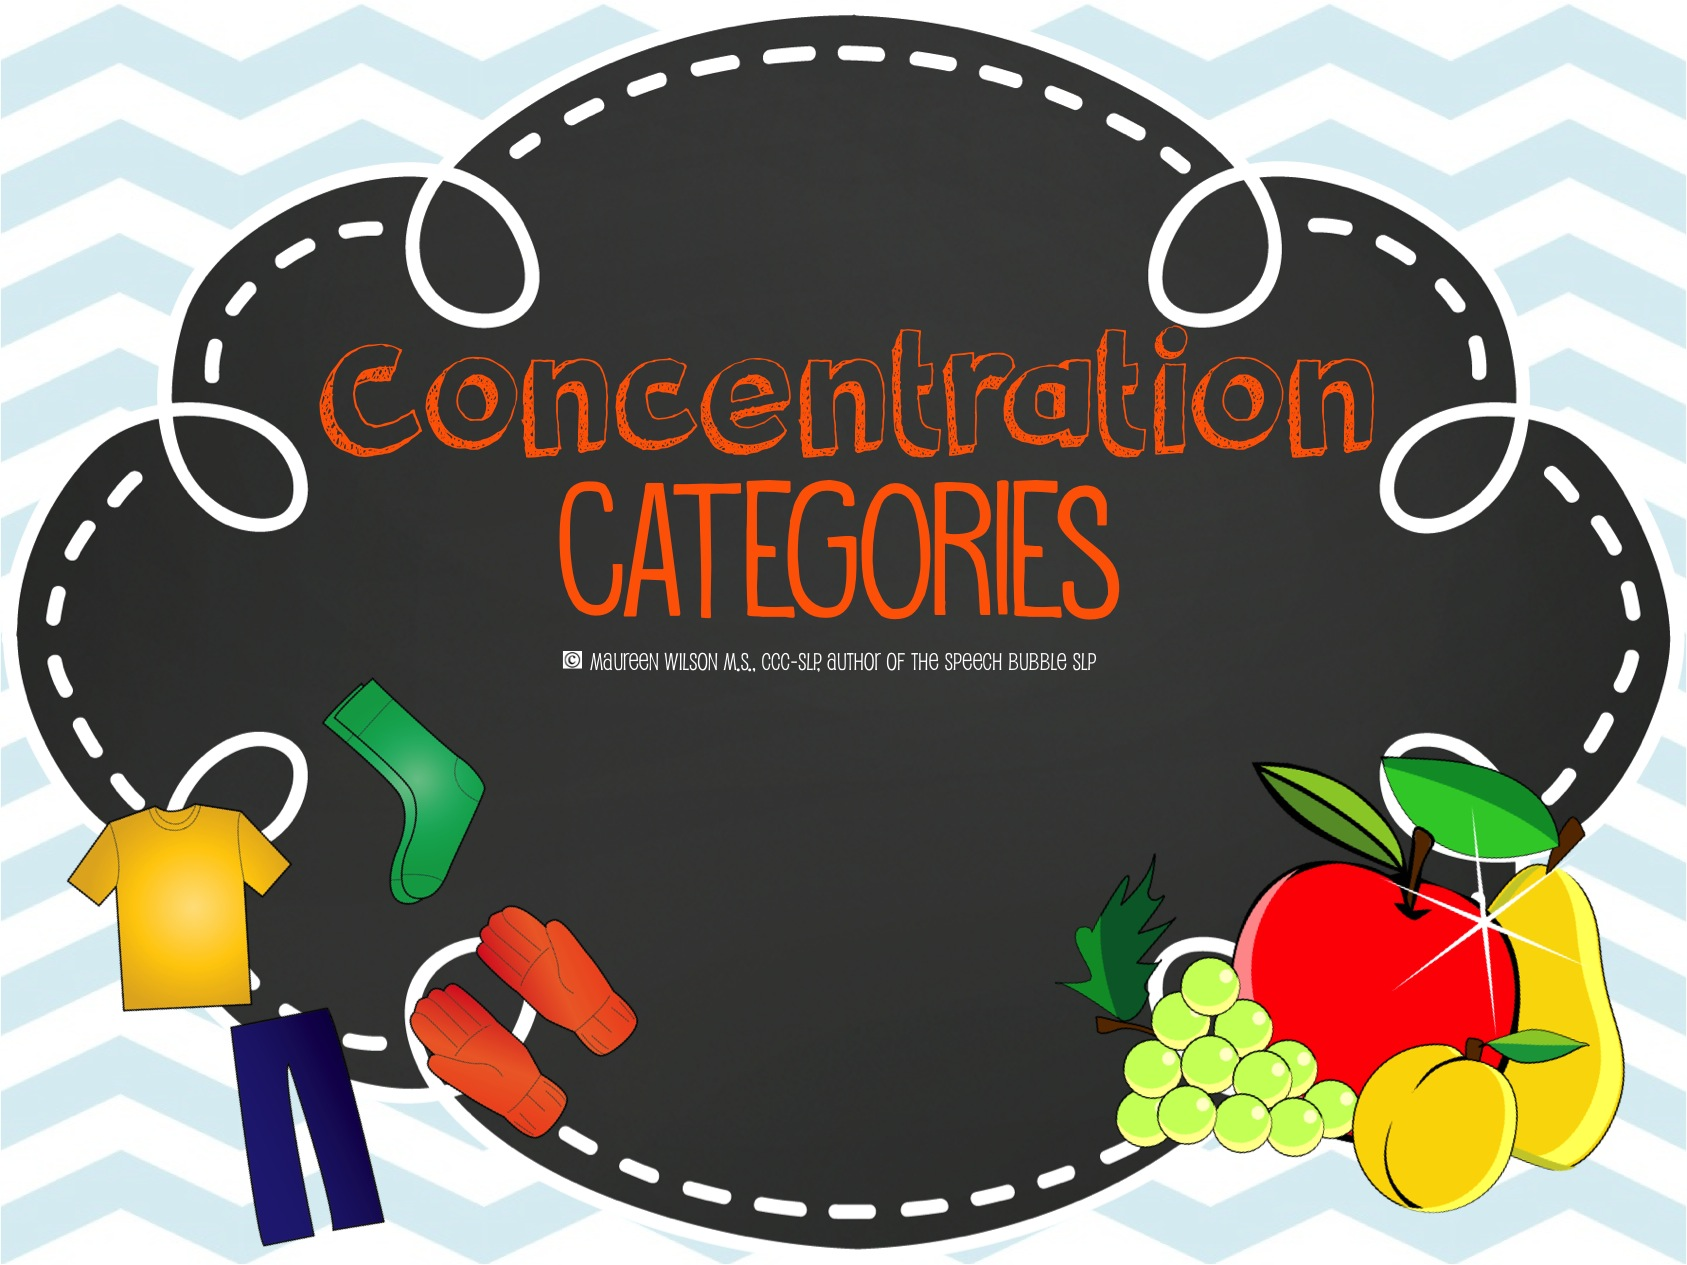 Concentration Categories